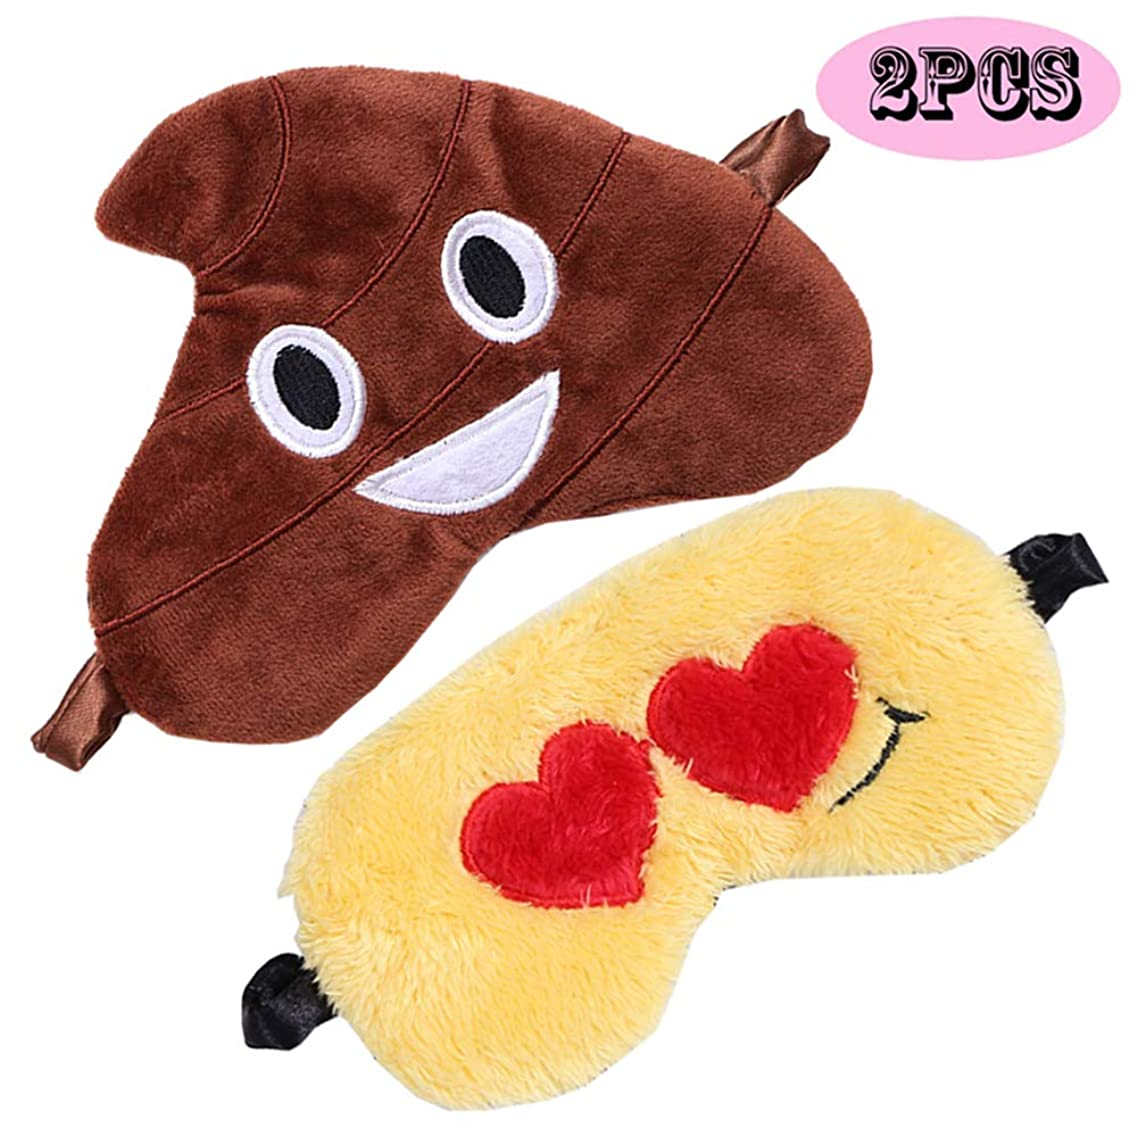 2 Pack Cartoon Funny Poop Emoji Sleep Mask for Girls Cute Soft Plush Blindfold Sleep Masks Eye Cover for Women Girls Travel Nap Night Sleeping